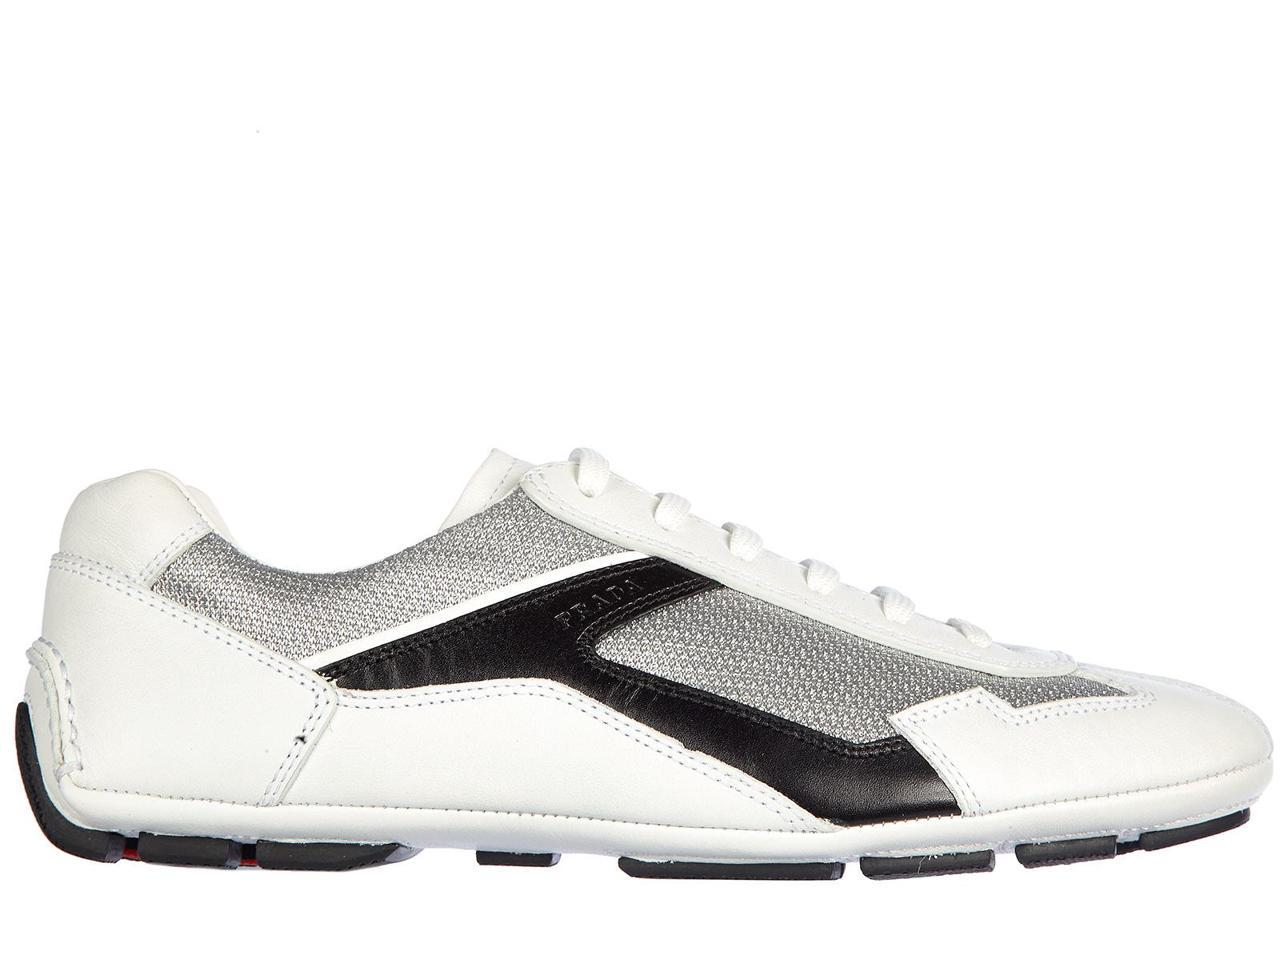 PRADA MEN'S SNEAKERS SHOES LEATHER TRAINERS SNEAKERS MEN'S PLUME BIKE WHITE 300af8